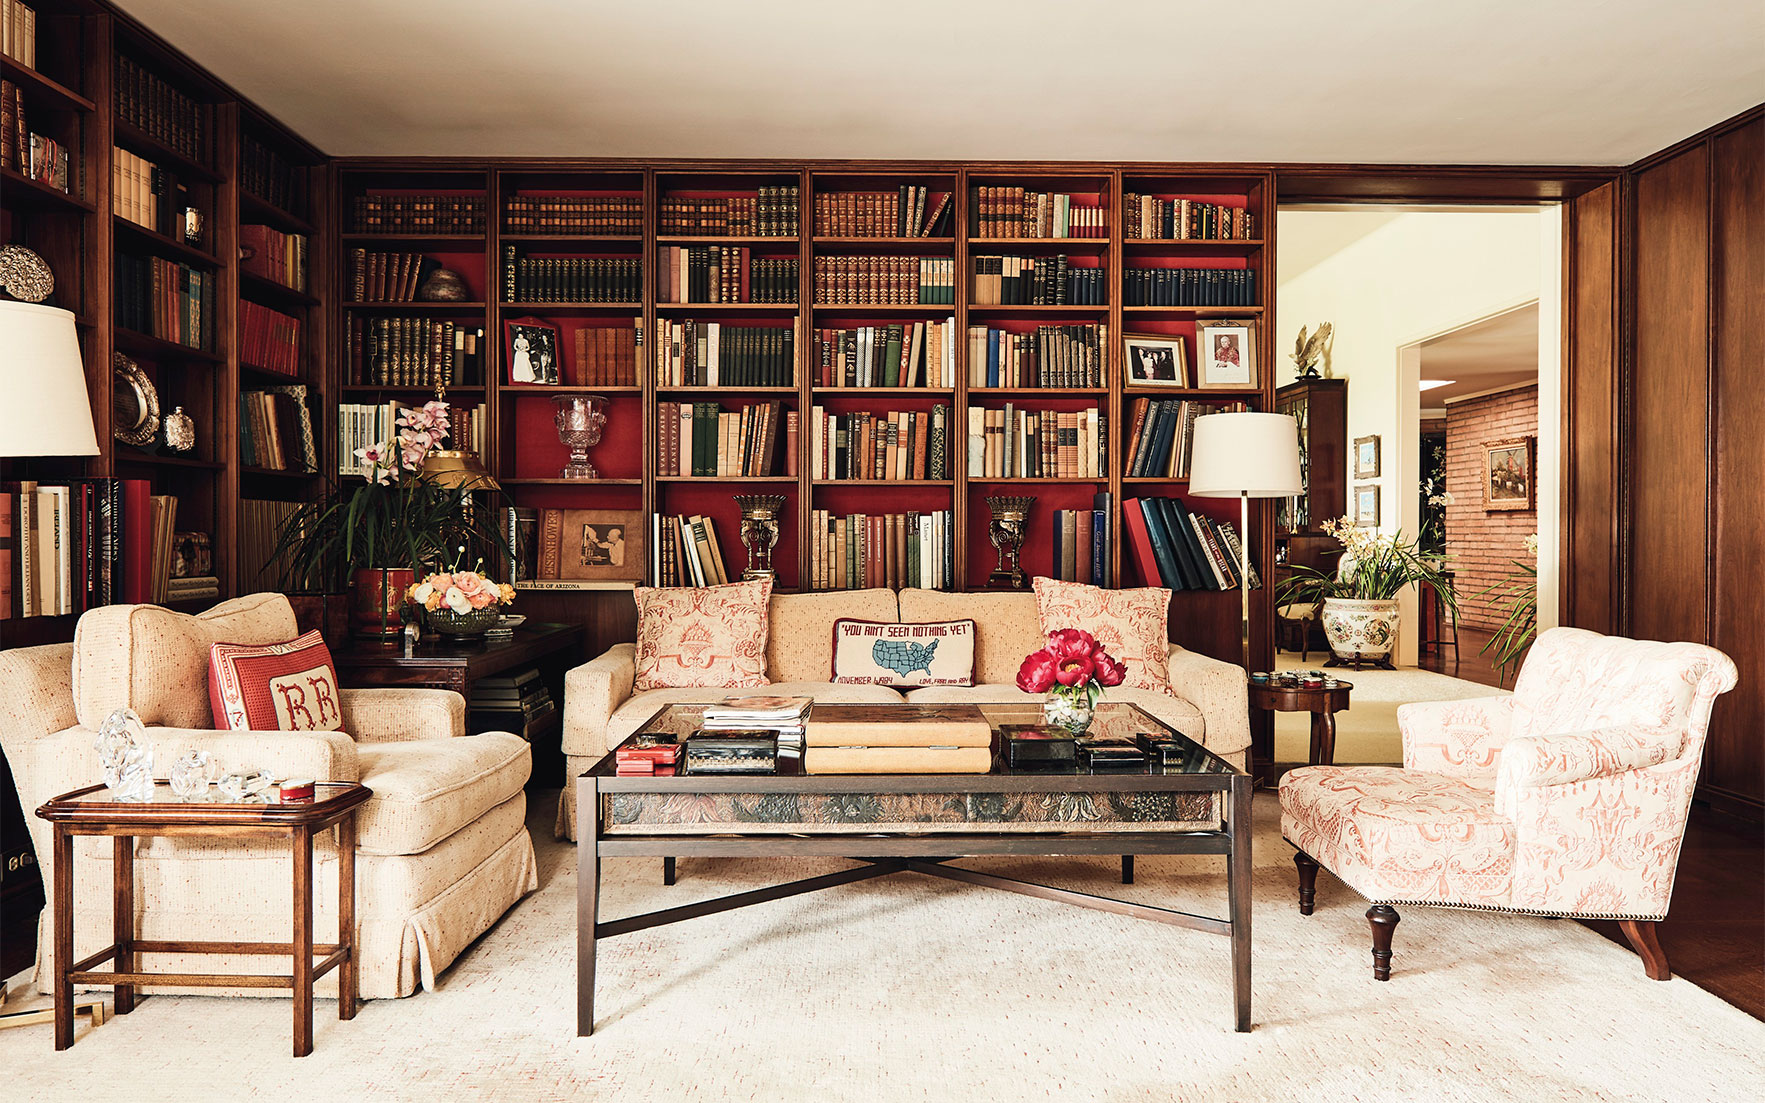 Reagan Bel Air private residence library; image Christie's